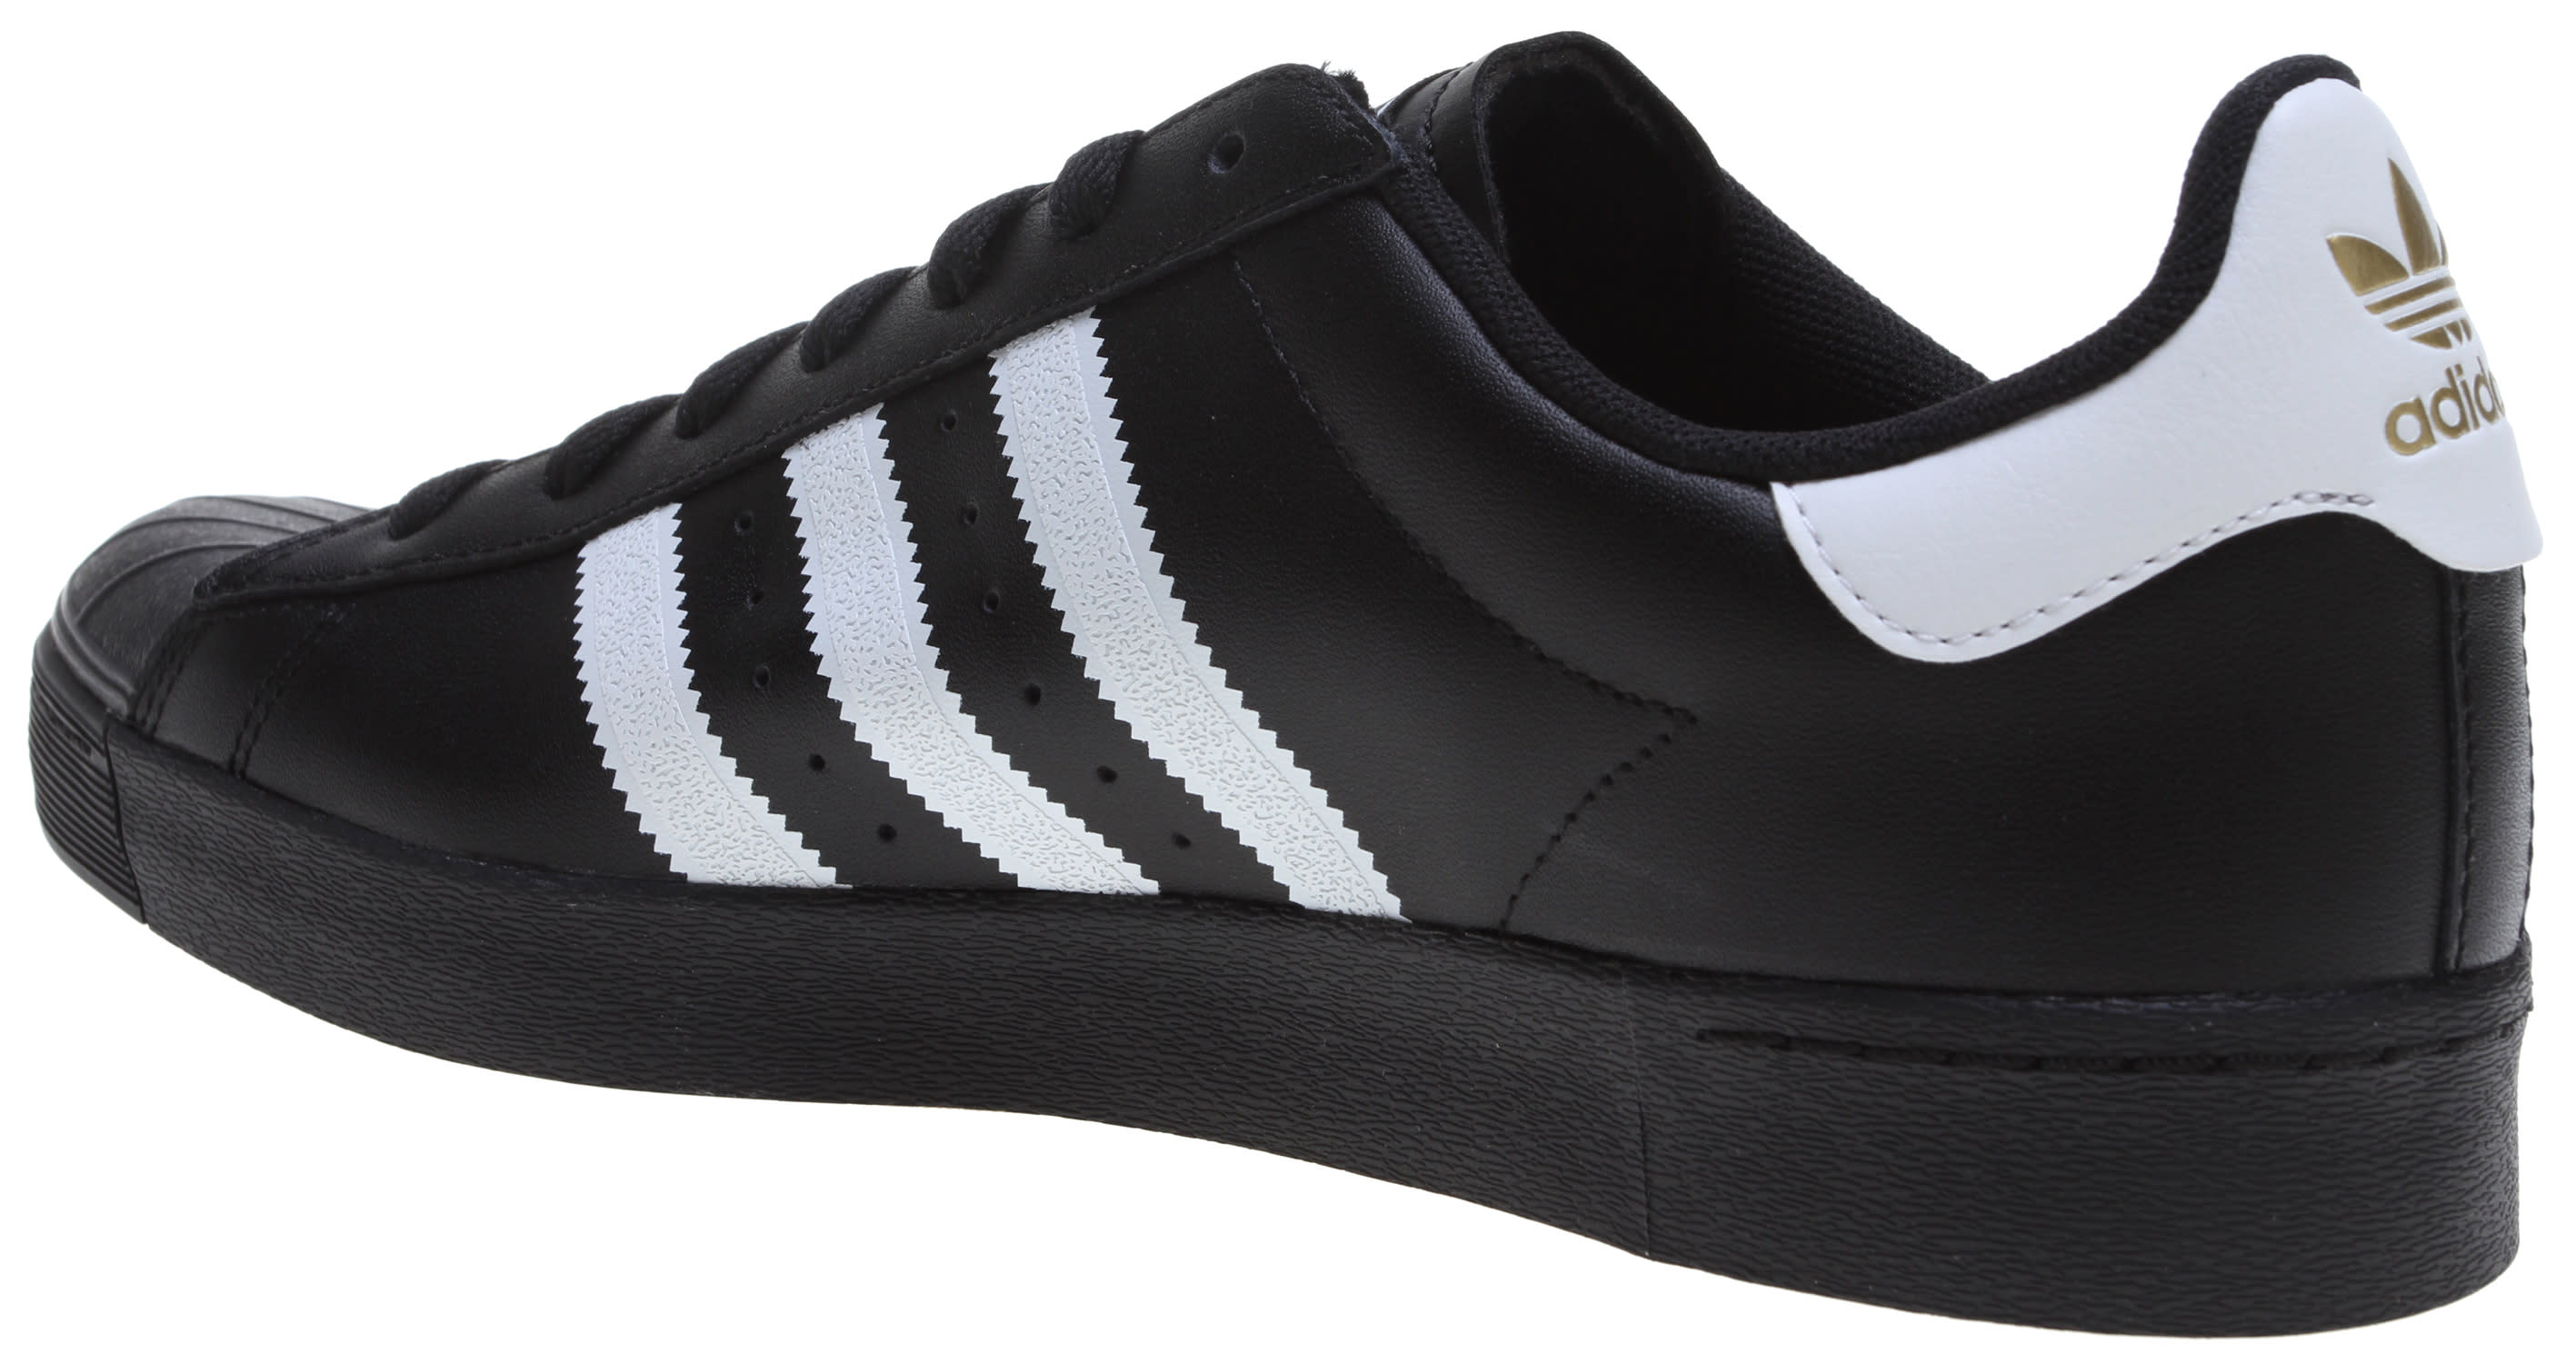 best service 17b92 fdc7f Adidas Superstar Vulc ADV Skate Shoes